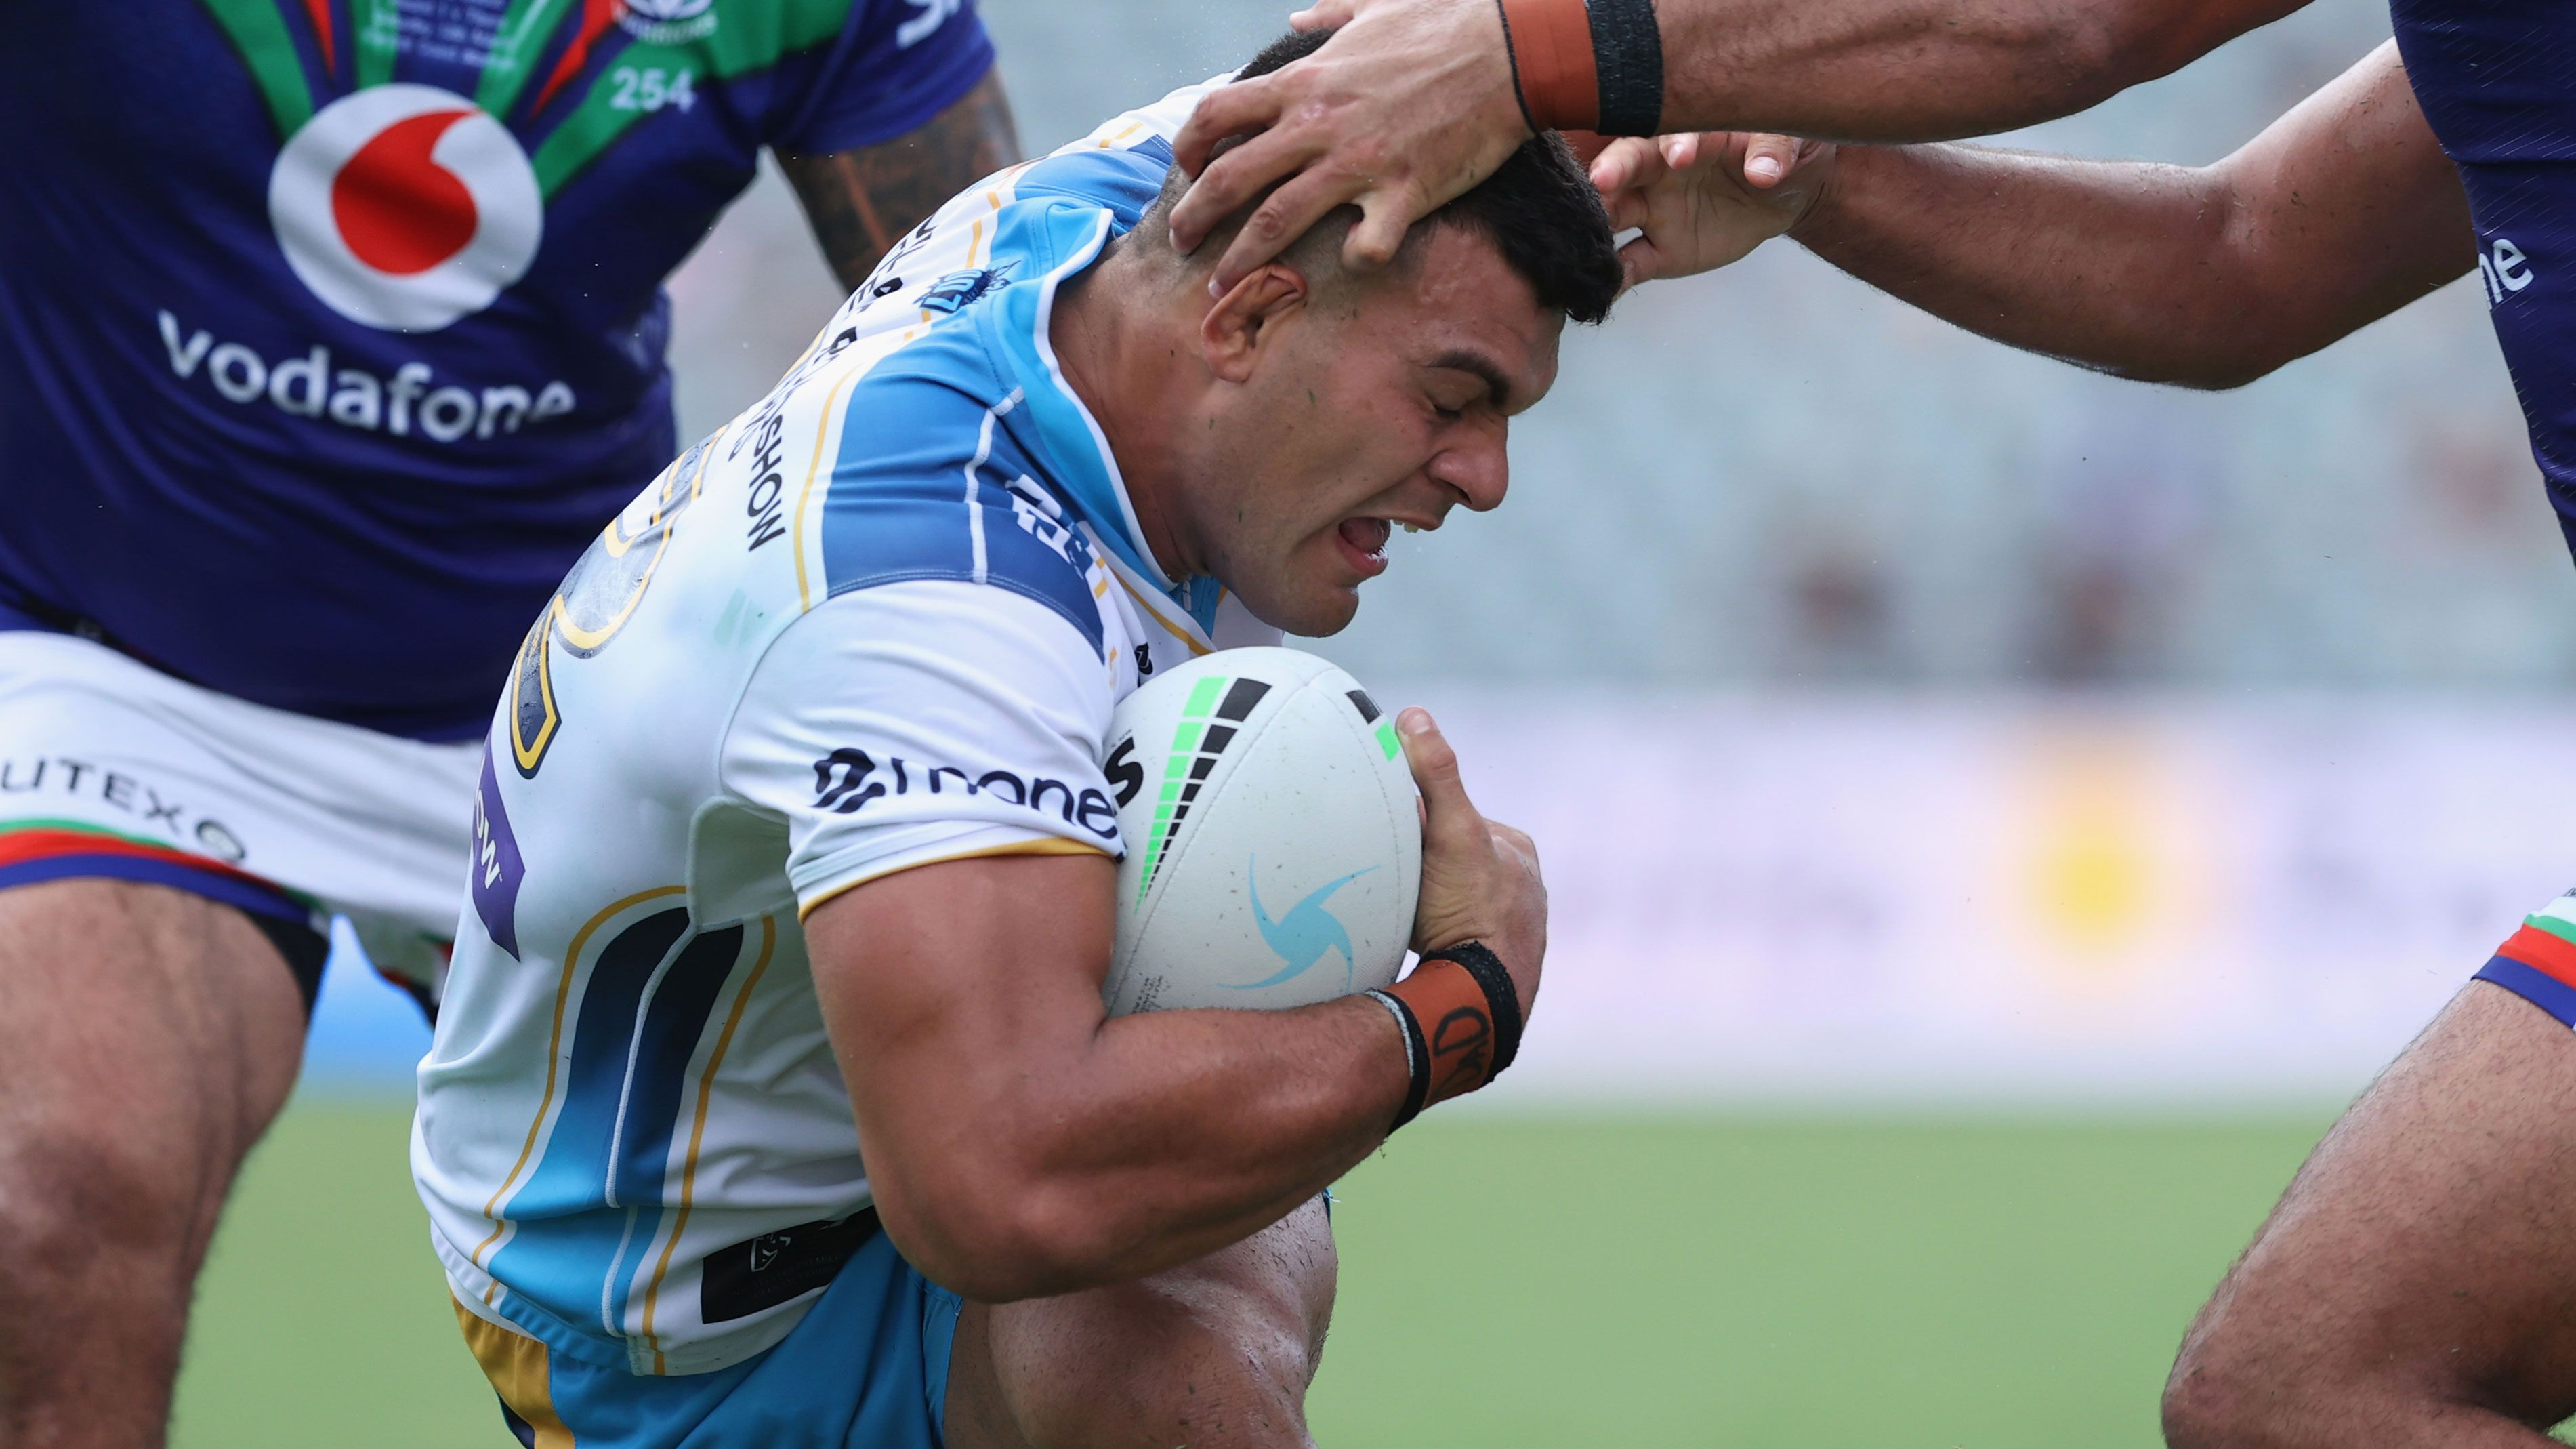 David Fifita is brought down by two Warriors tacklers.